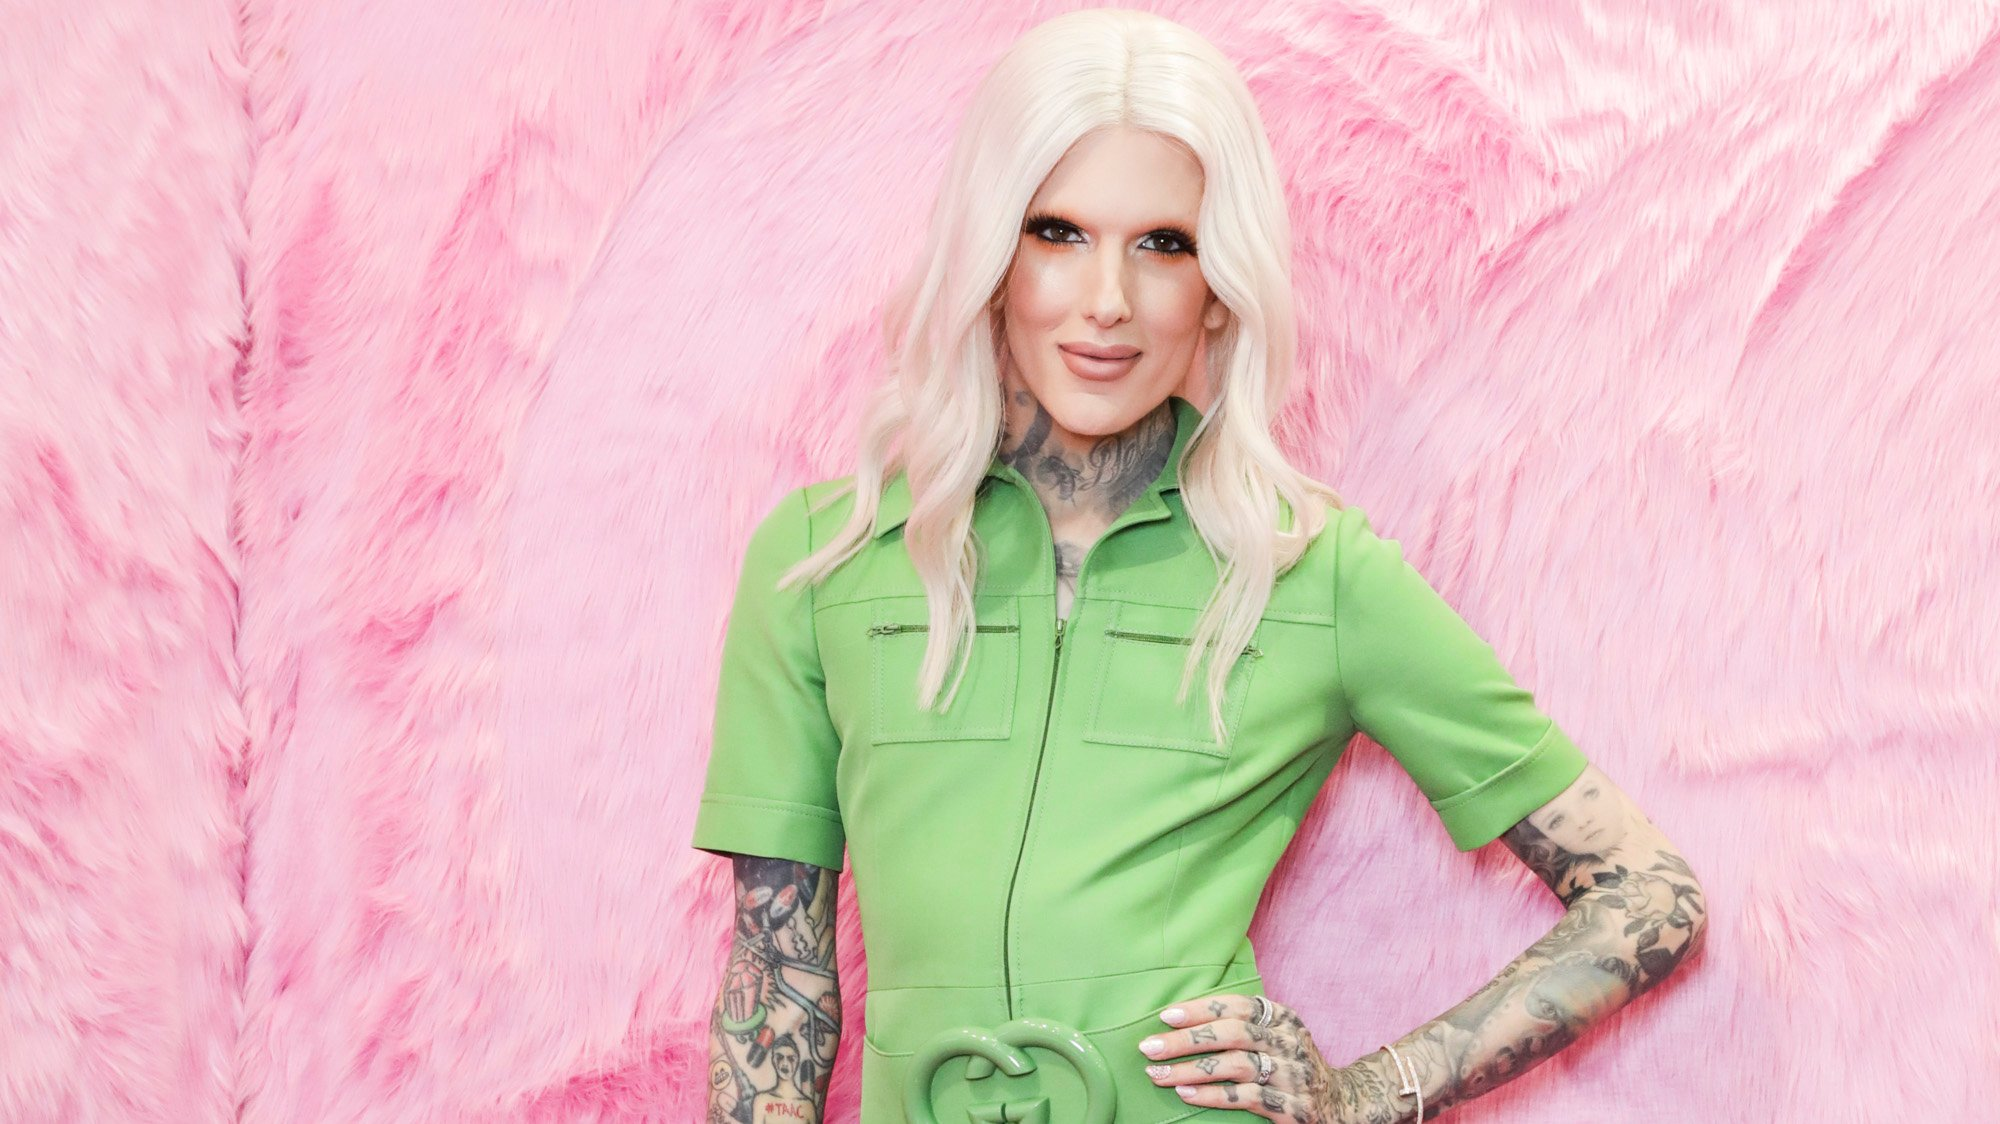 YouTuber Jeffree Star Hospitalized After 'Severe Car Accident' – NBC Bay Area